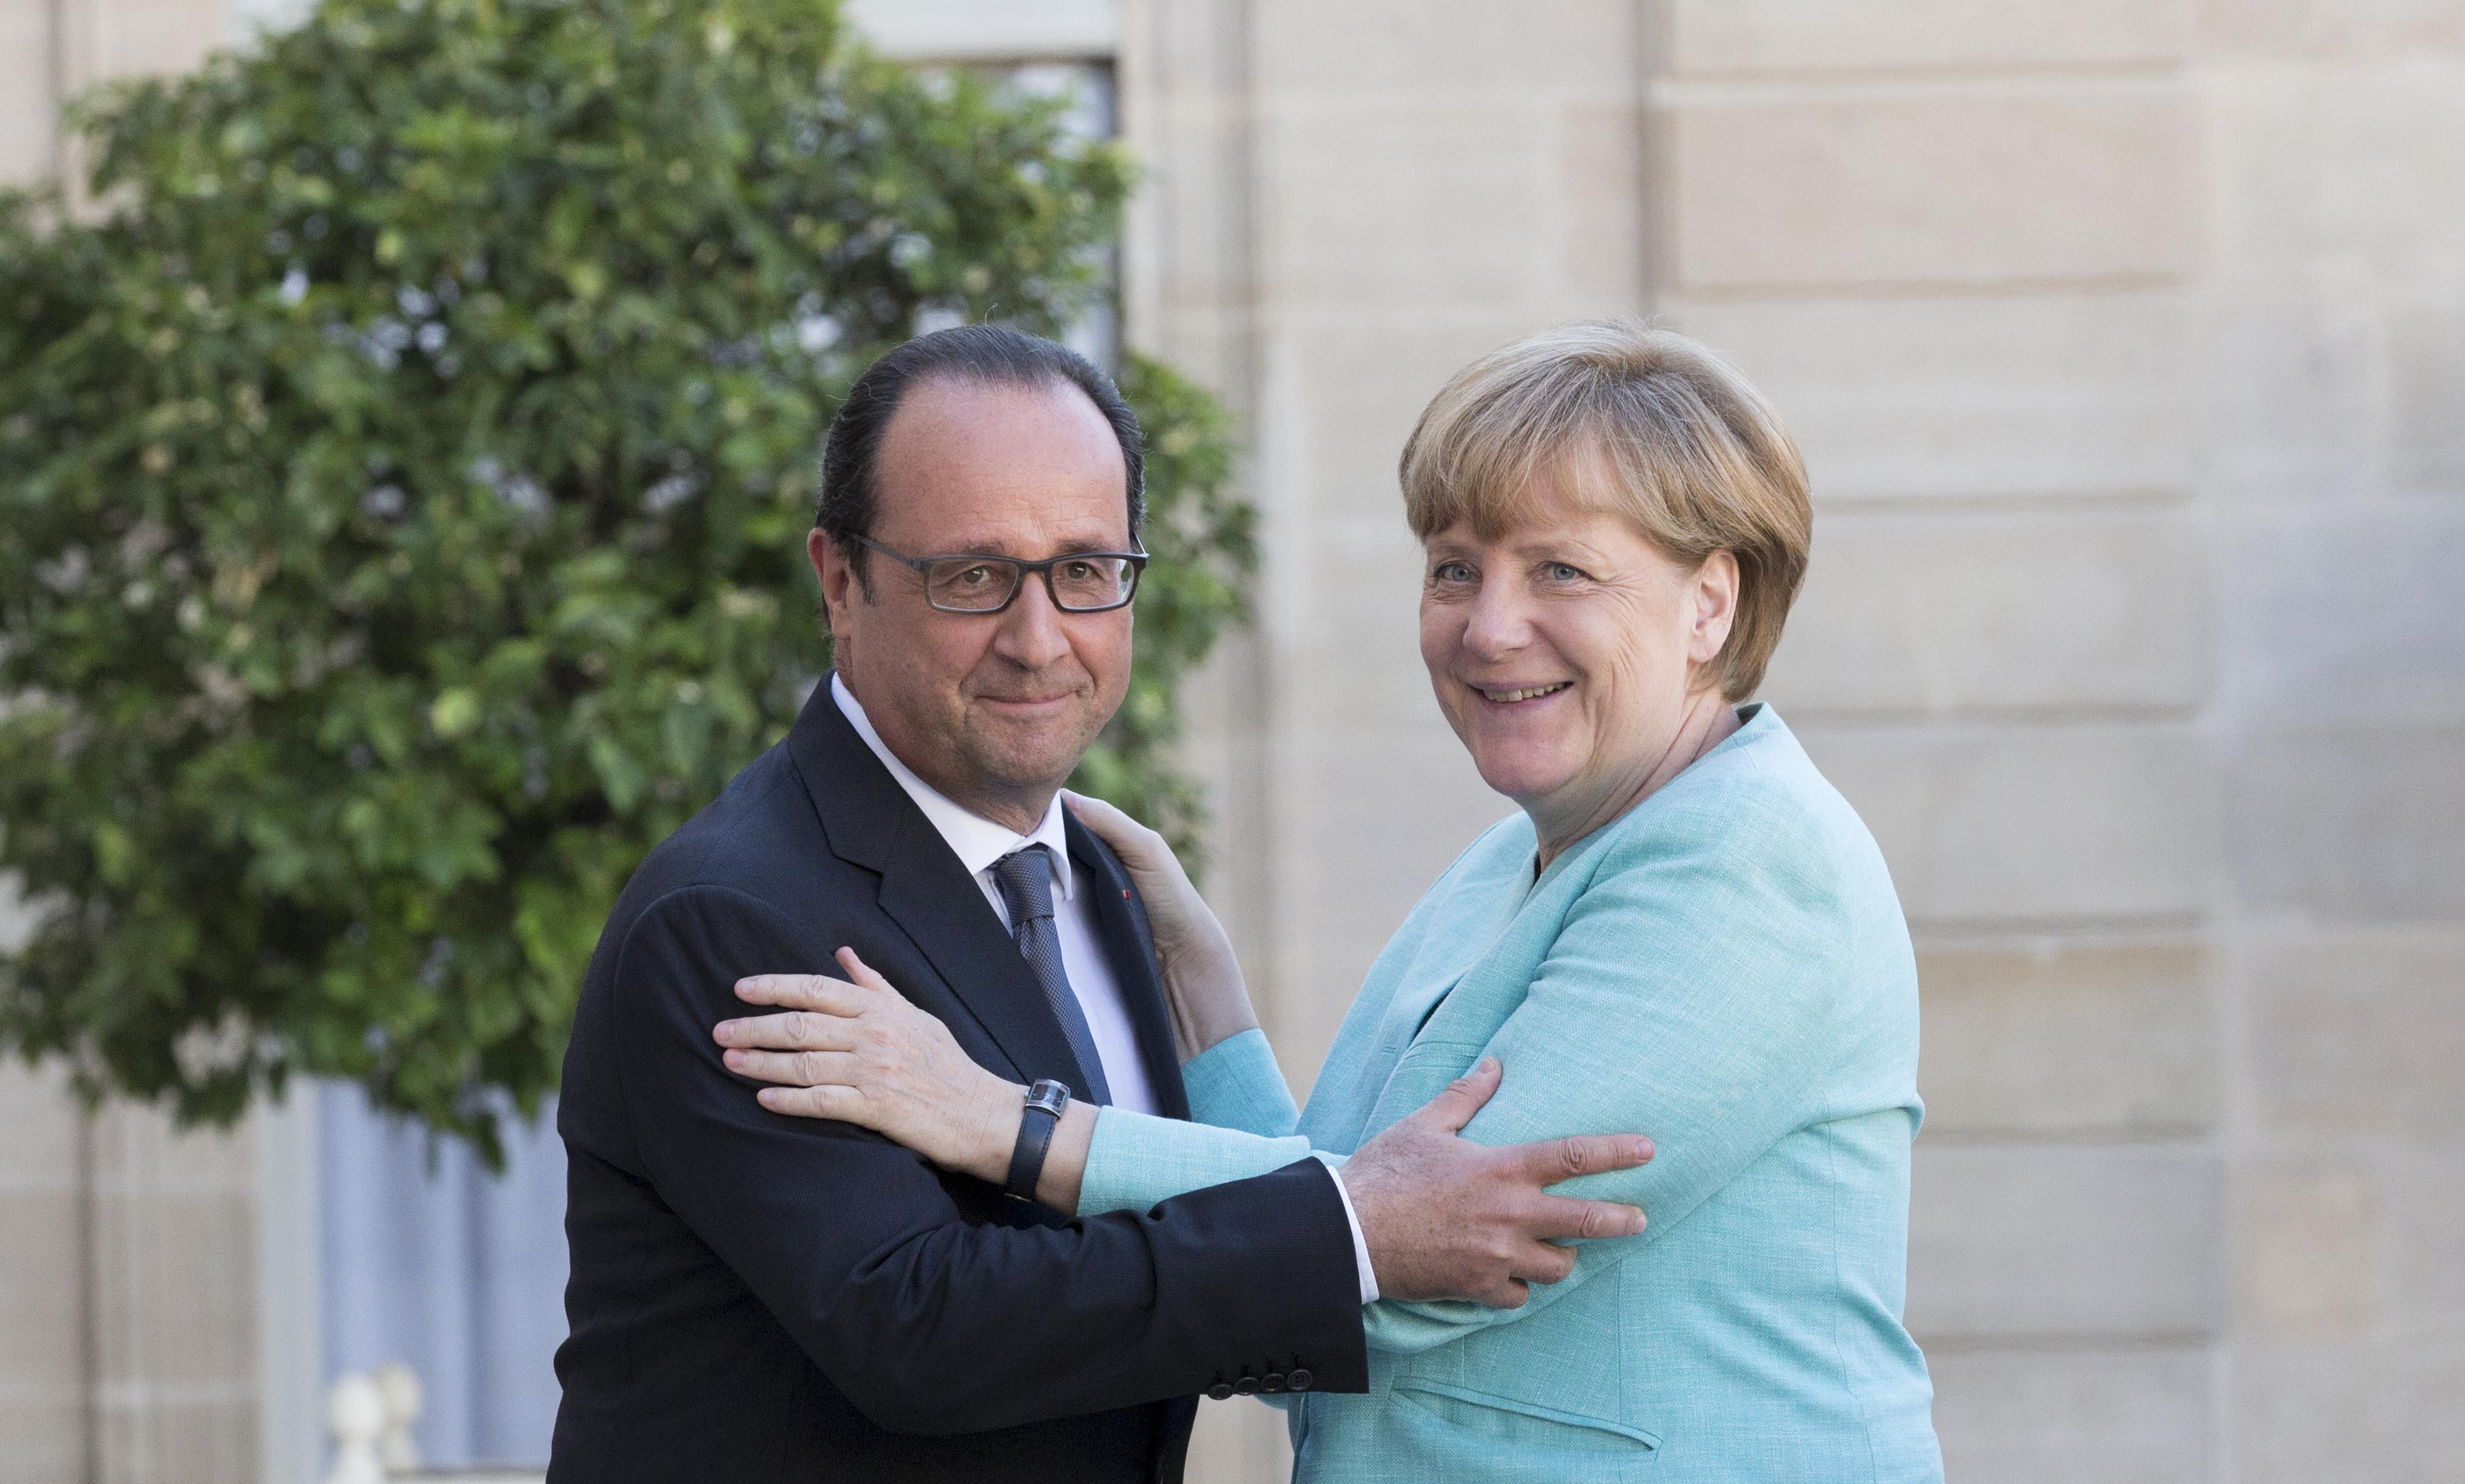 Germany's Chancellor Angela Merkel And France's President Francois Hollande Meet To Access Greek Situation